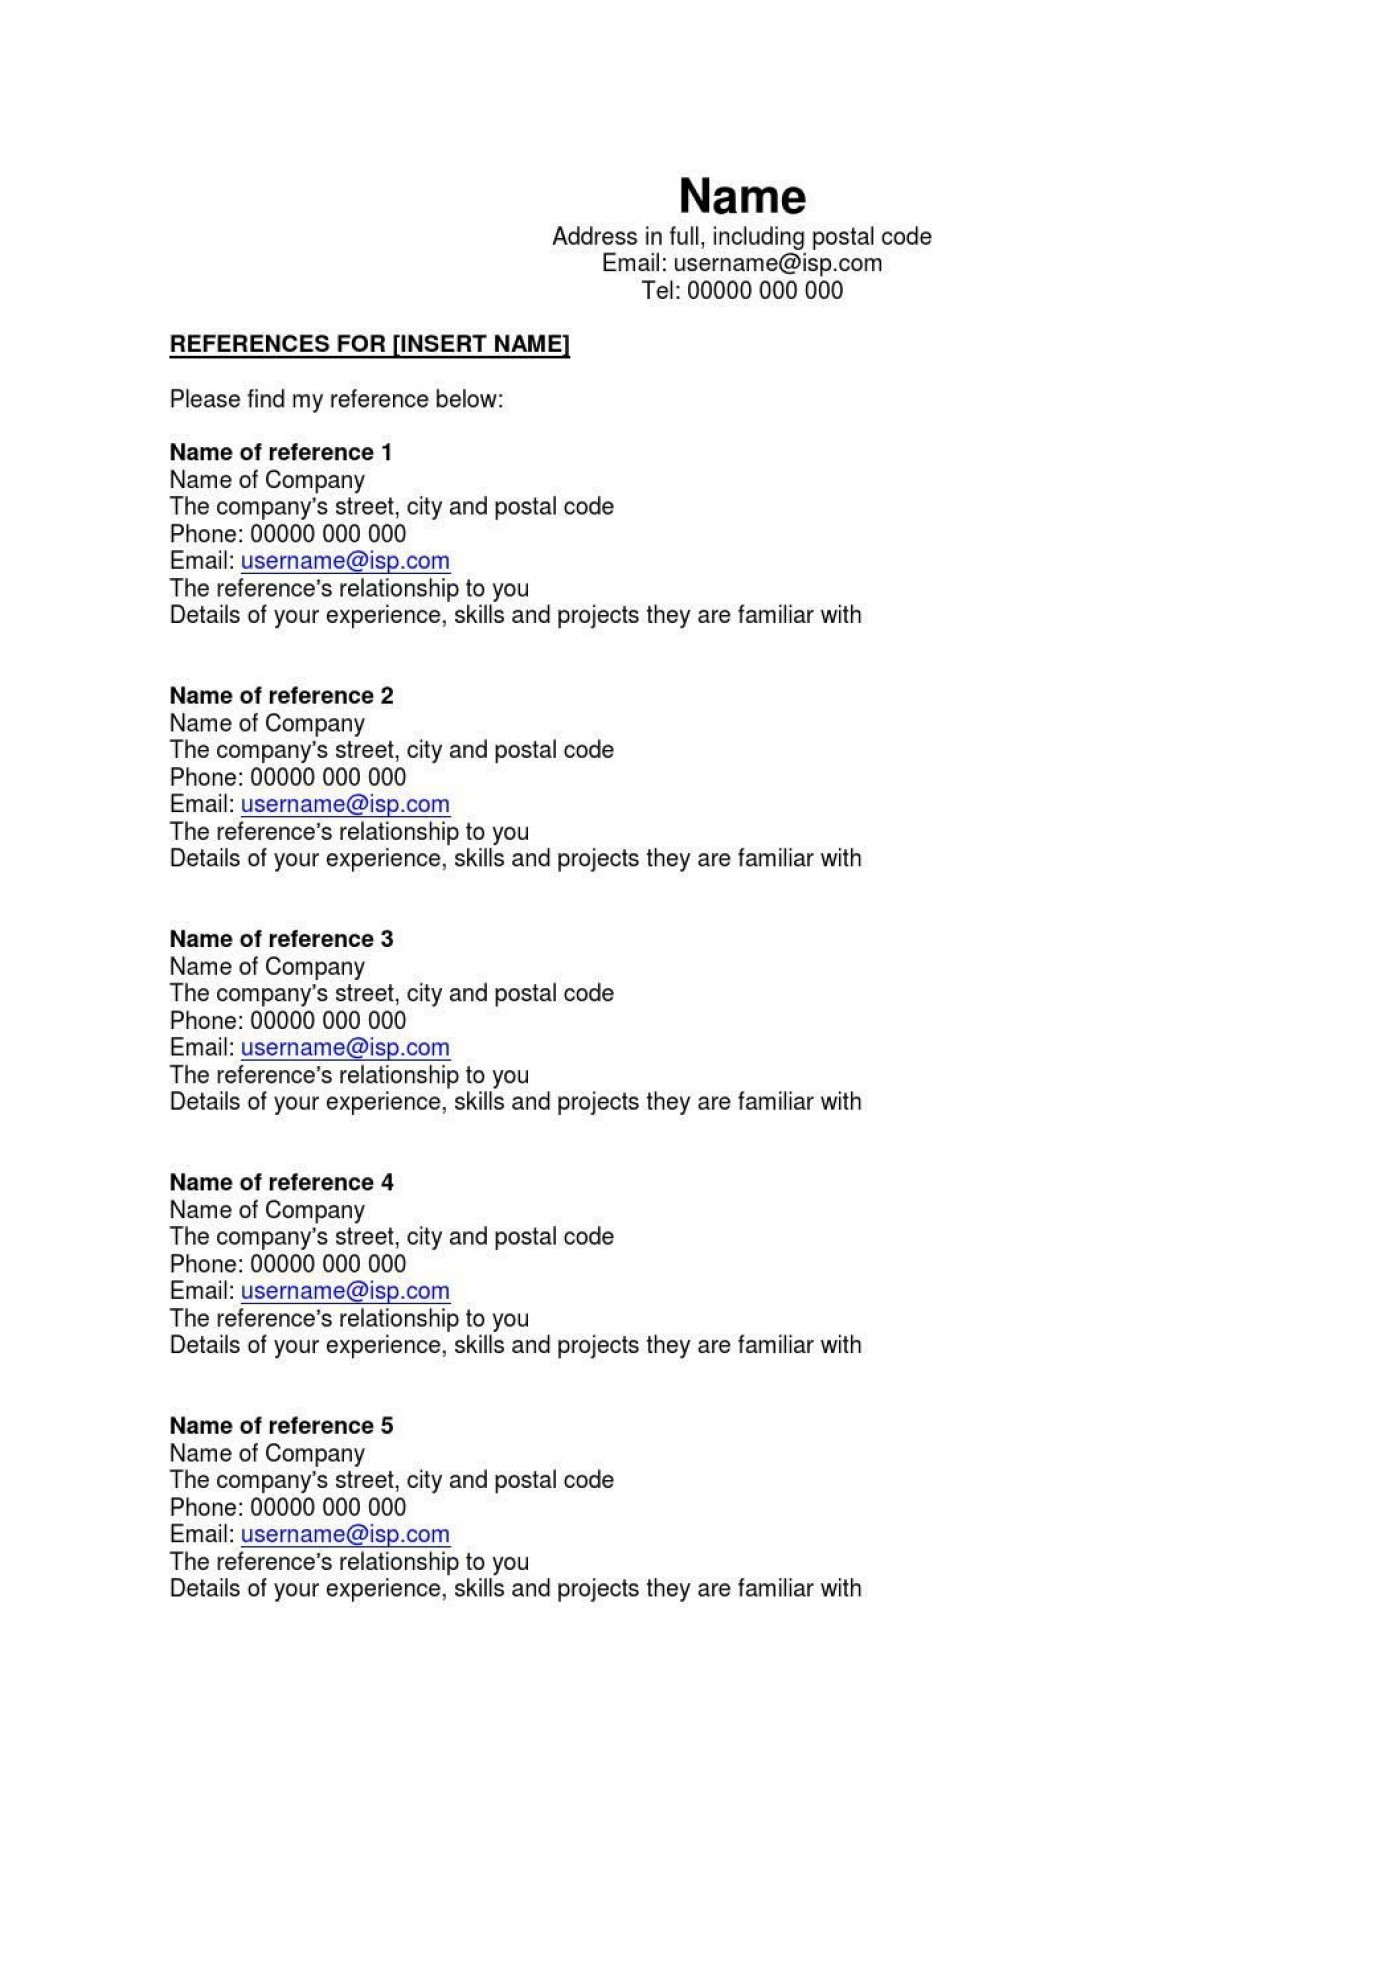 002 Astounding Resume Reference List Template Microsoft Word High Resolution 1400